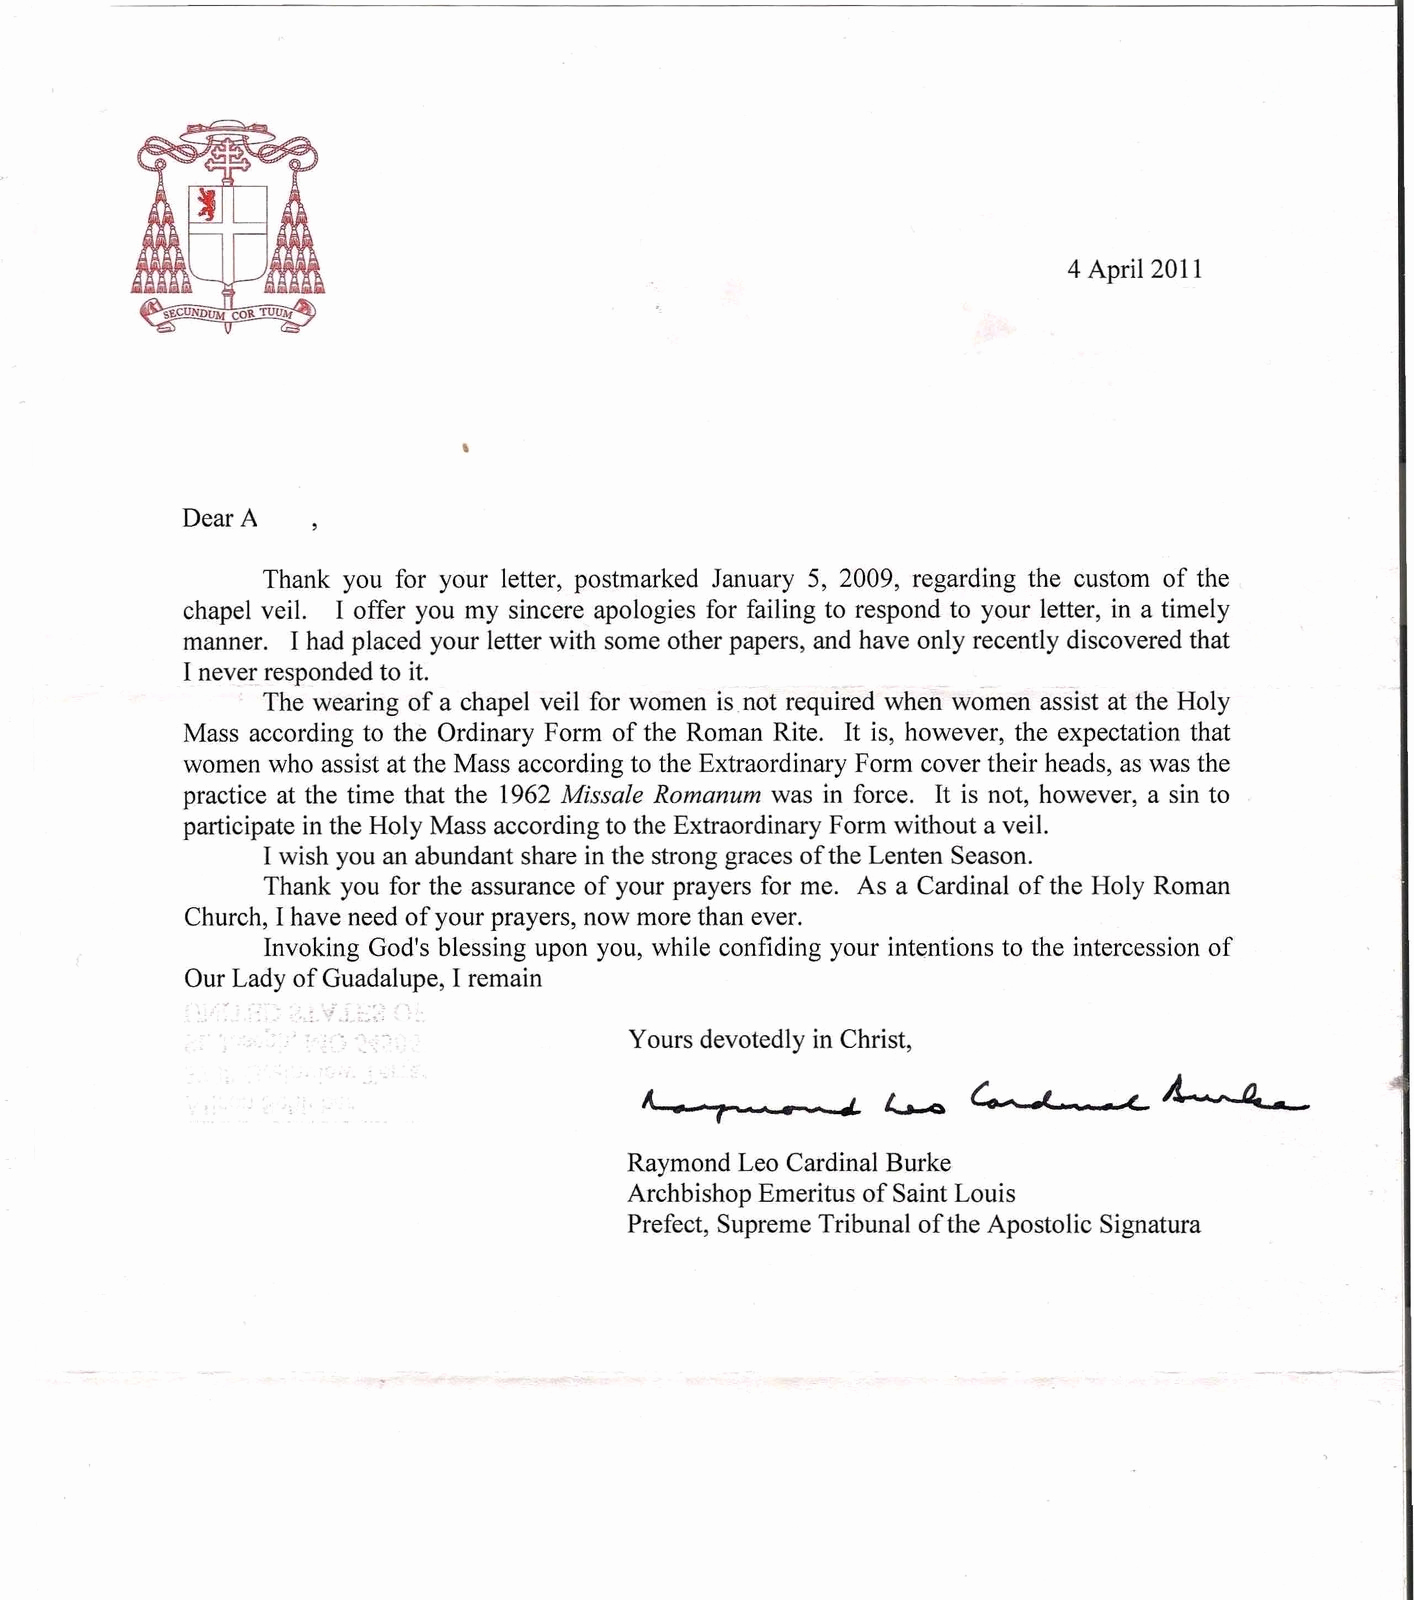 Letters Of Recommendation for Immigration Inspirational Immigration Re Mendation Letter Template Collection